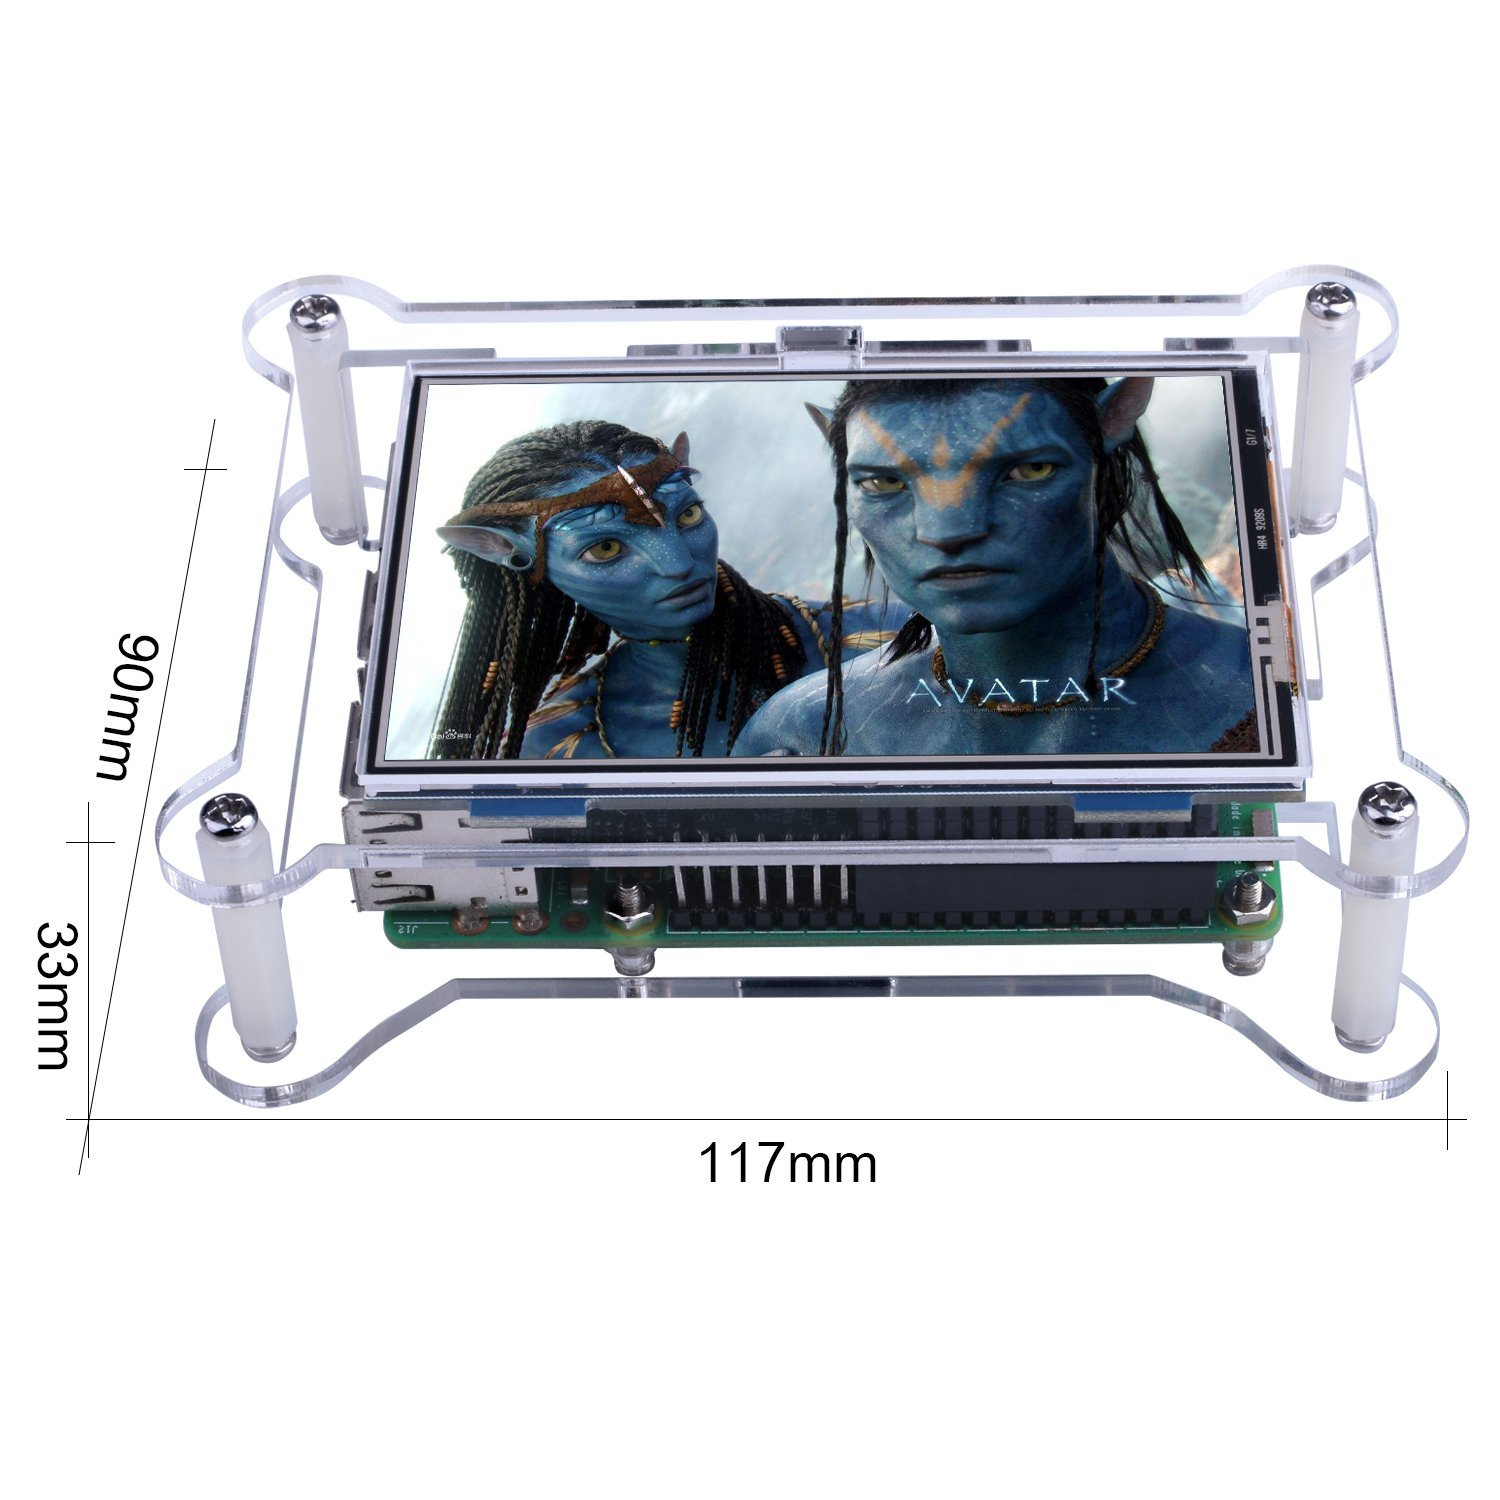 Kuman Raspberry Pi 3 Generation TFT Touch Screen 3.5 inch 480 320 TFT LCD Display Monitor Support All Raspberry PI Systems Video and Movie Play Arcade Game HDMI Audio Input SC6A